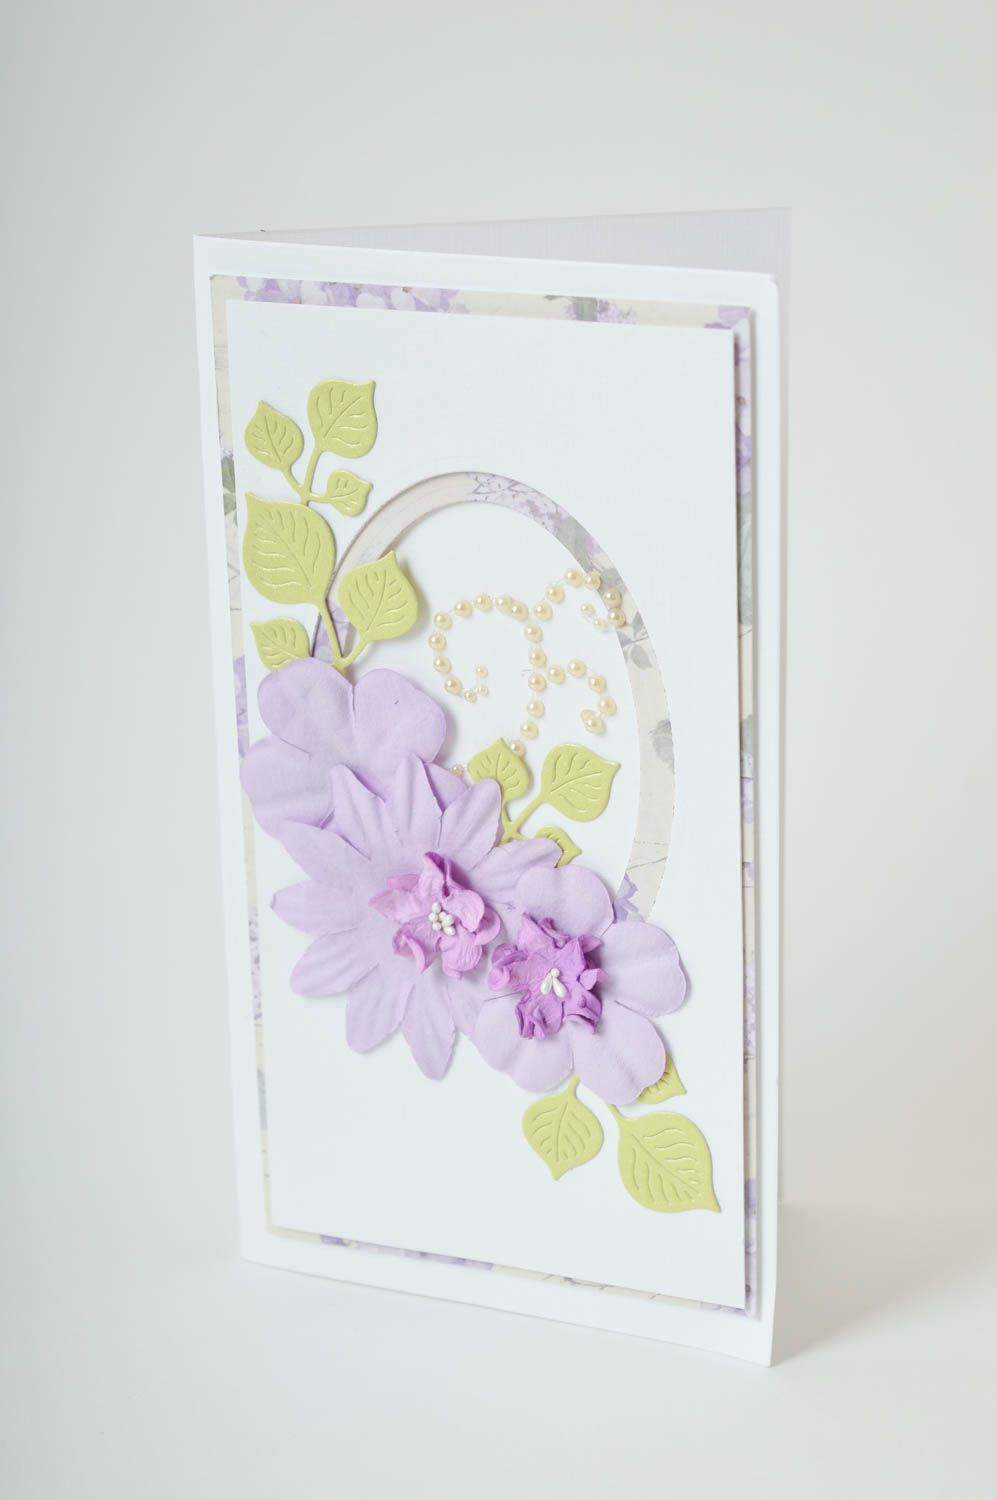 Handmade greeting card birthday card thank you card handmade gifts souvenir idea photo 2